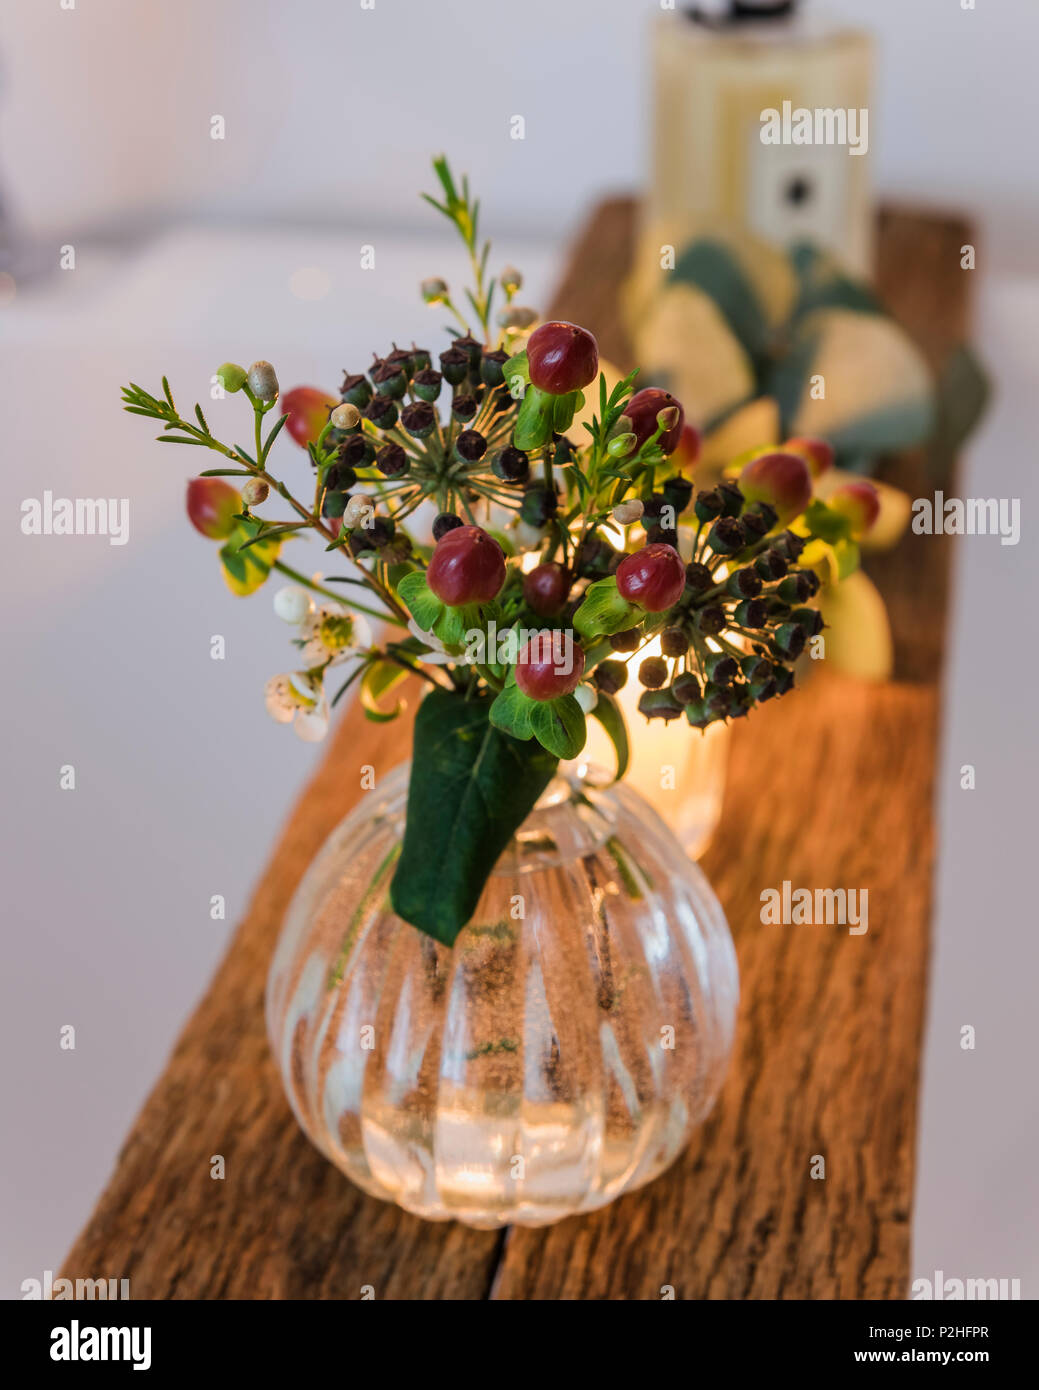 Small posey of berries on a wooden bath shelf. - Stock Image